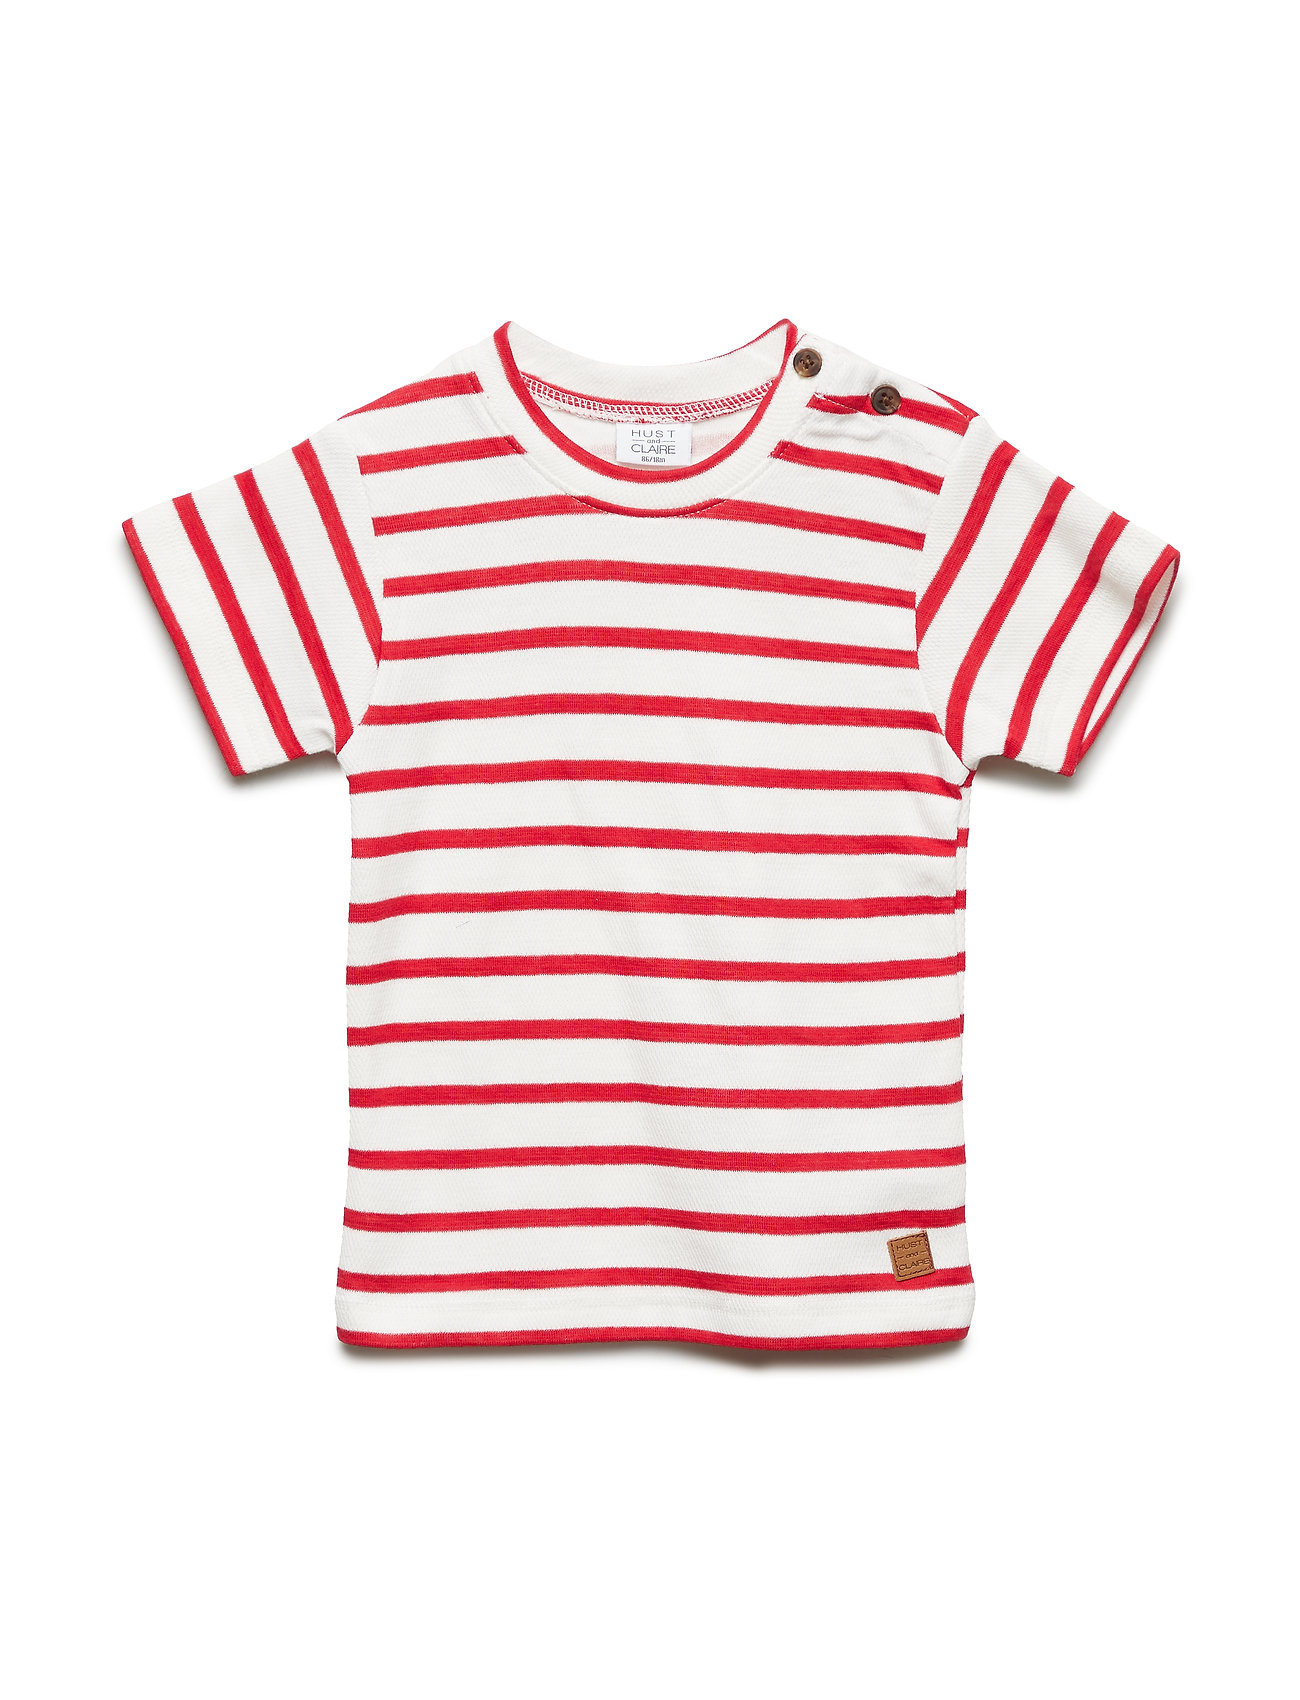 Hust & Claire Andy - T-shirt S/S - RED PATROL